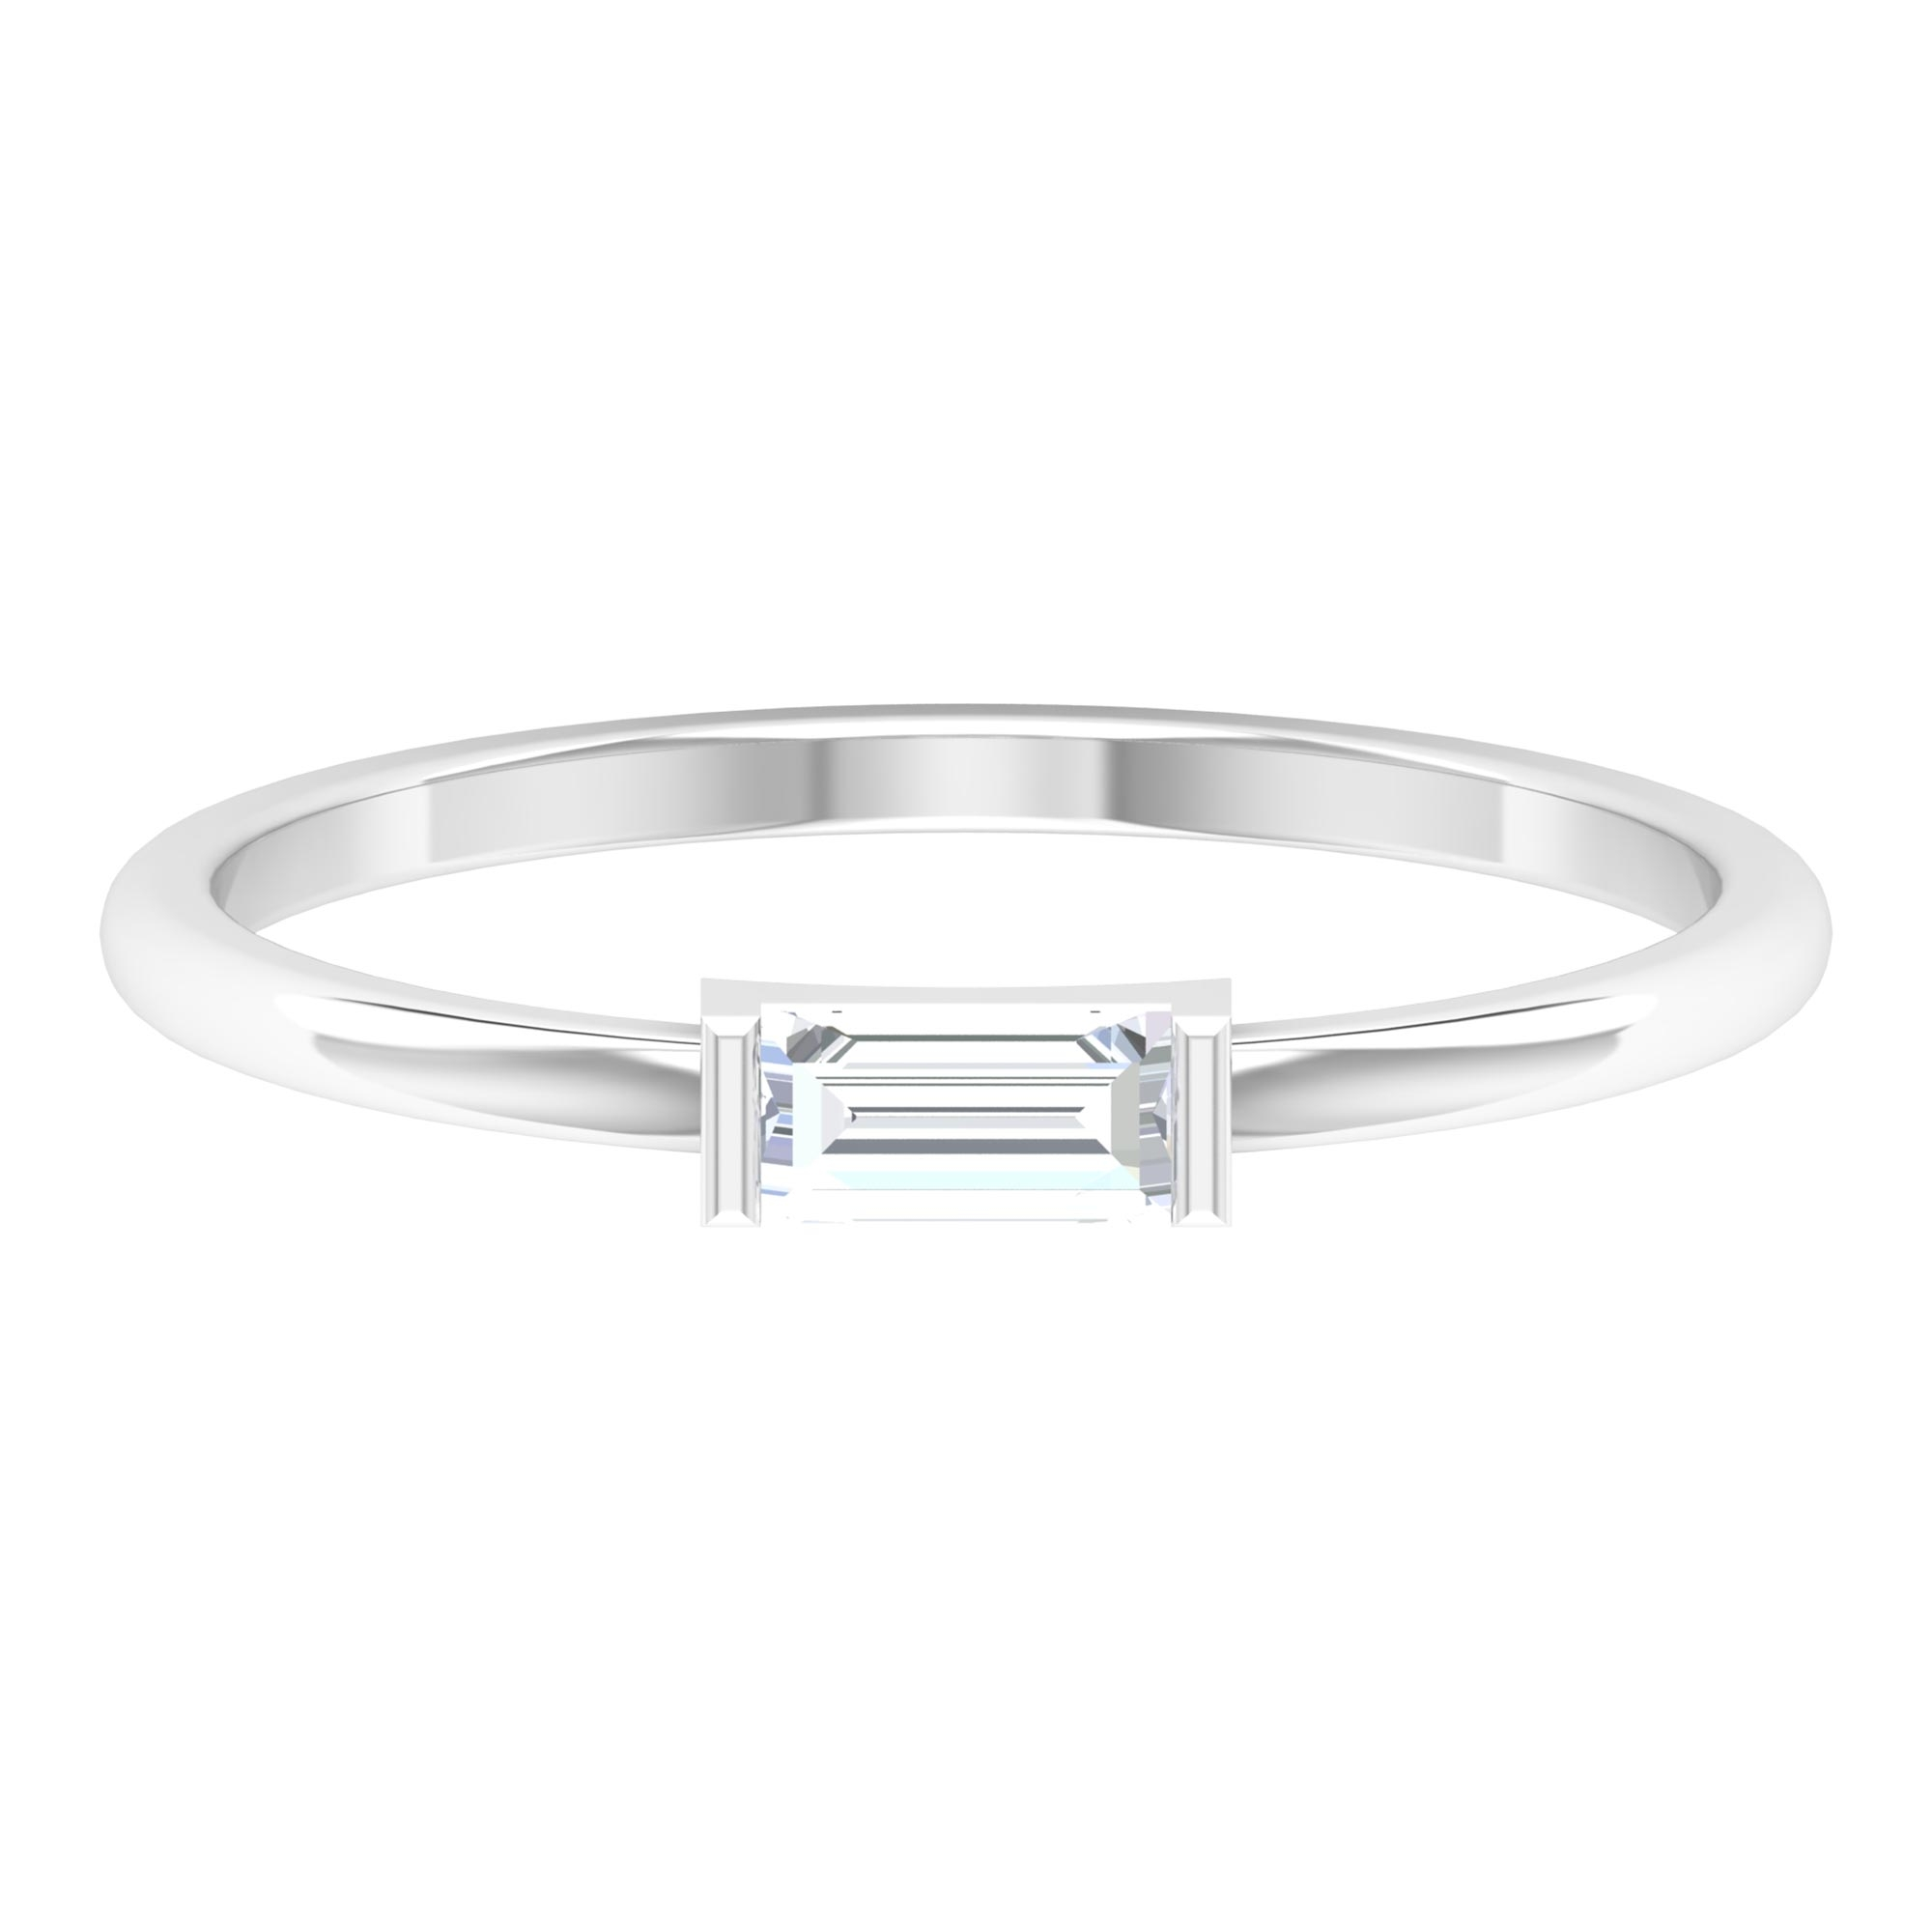 1/4 CT Baguette Cut Diamond Solitaire East West Ring in Bar Setting